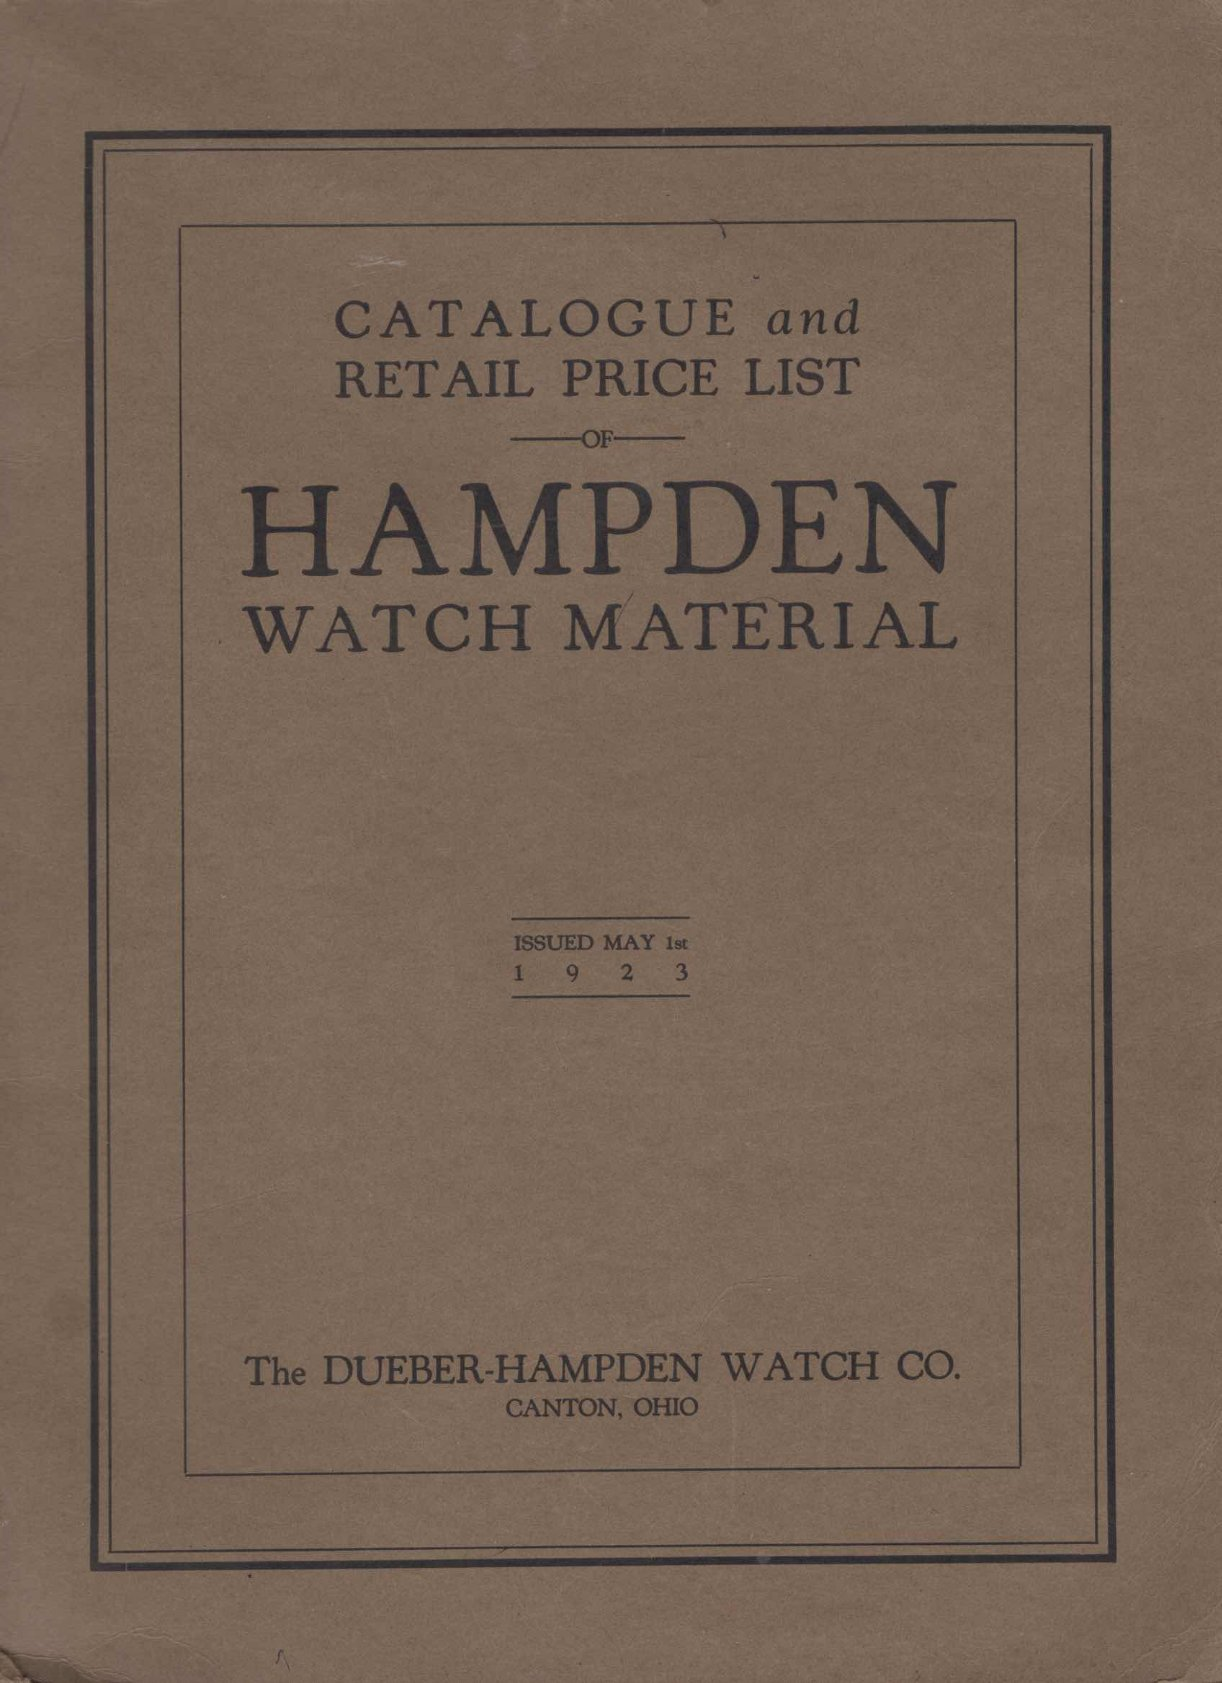 1923 Hampden Watch Company Material Catalog Cover Image